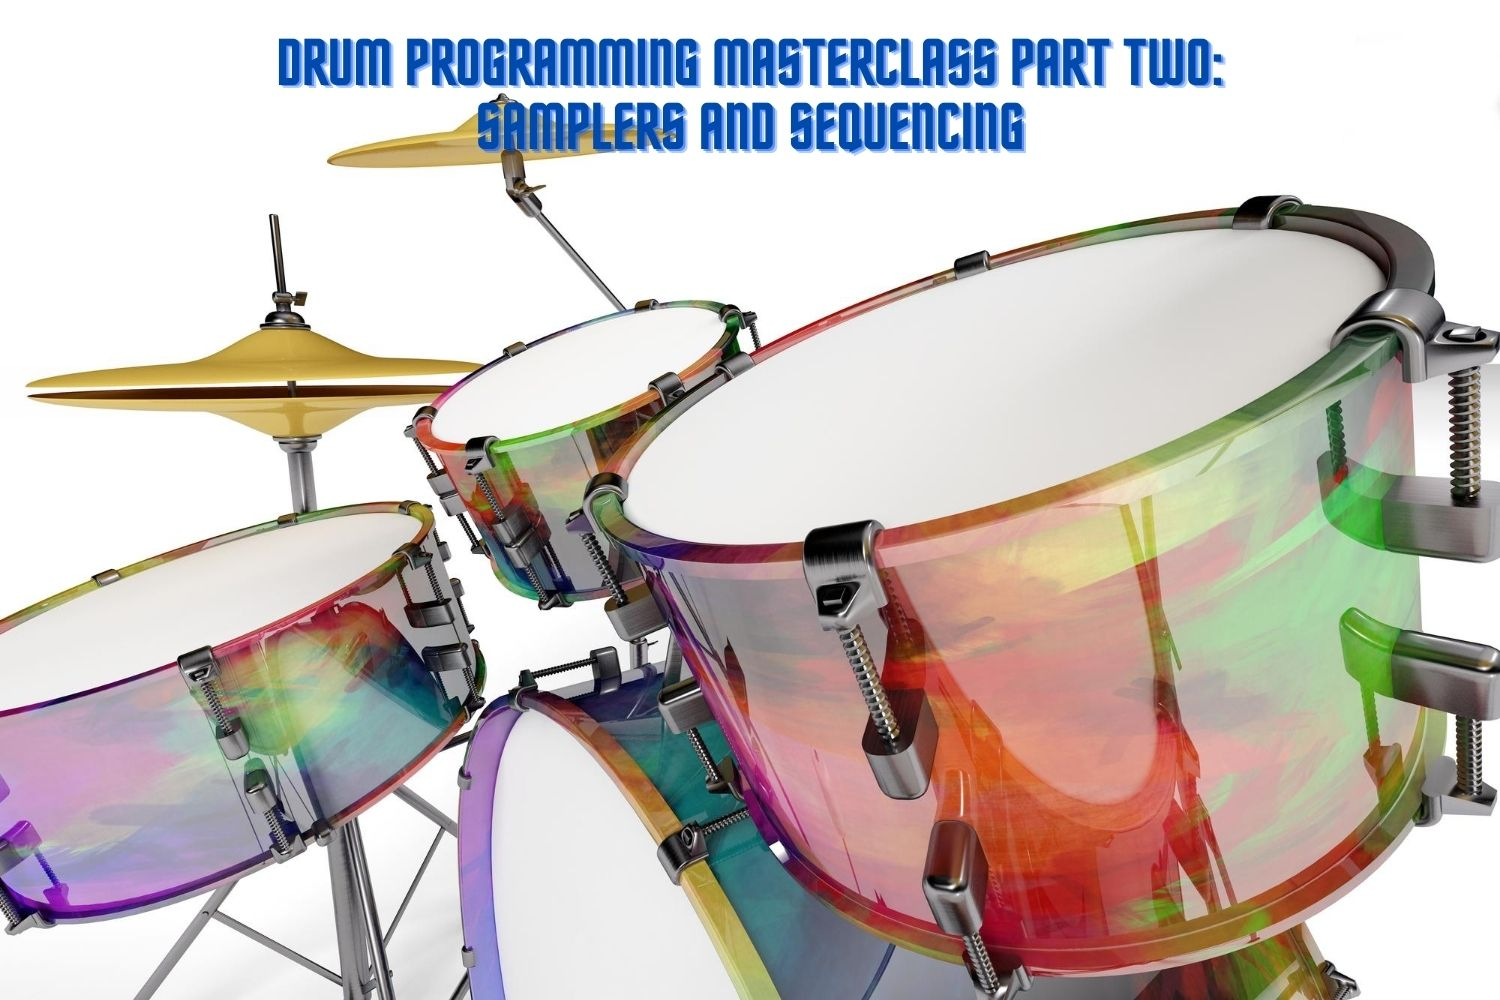 Build better beats through drum programming patterns and style tips including Drum and Bass, Trap, Dubstep, much more